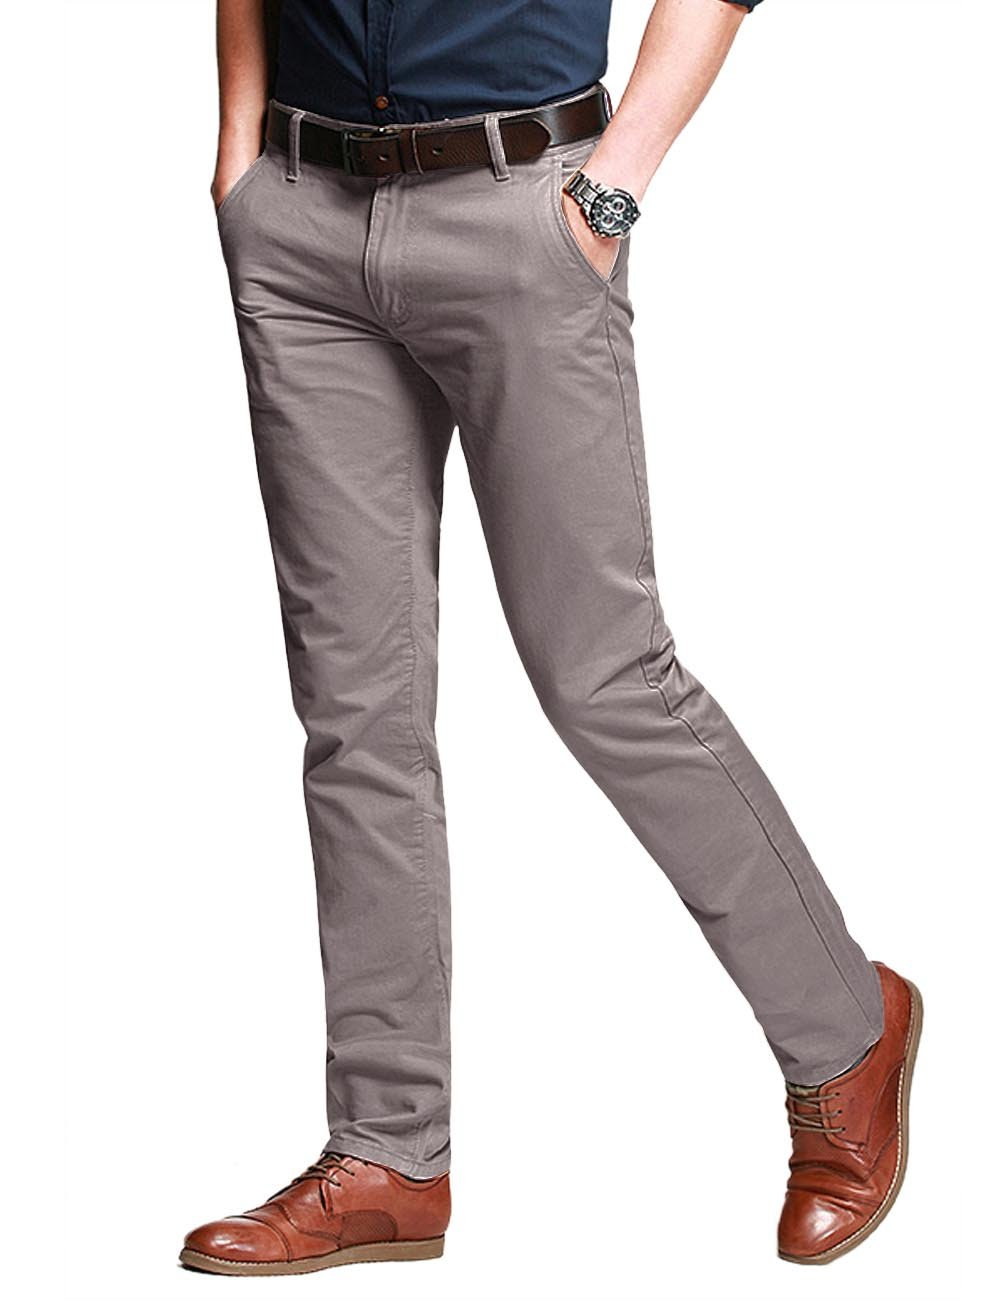 Match Men's Fit Tapered Stretchy Casual Pants (38W x 31L, 8106 Light khaki)